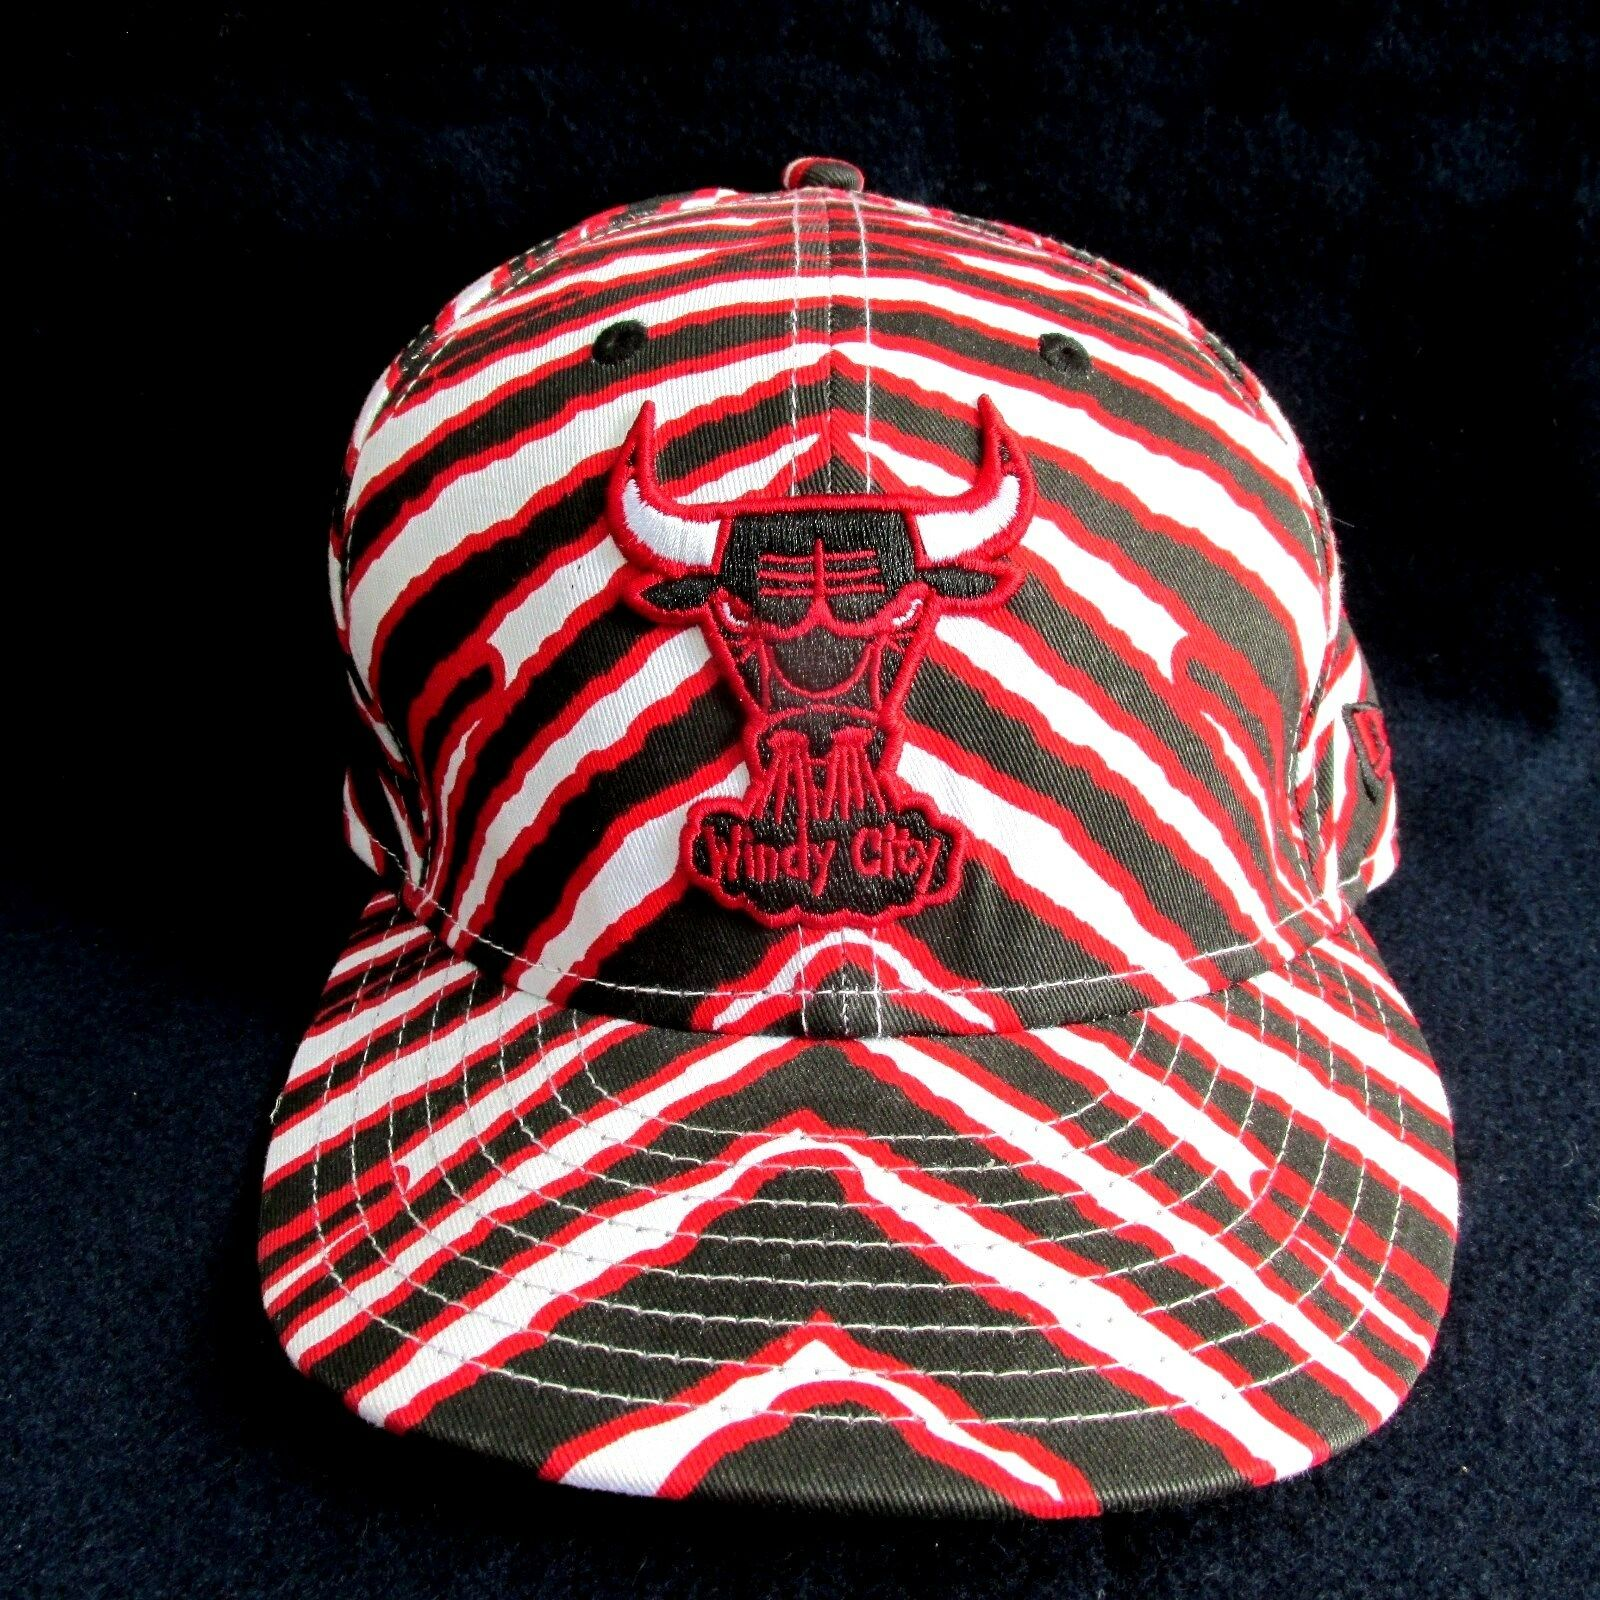 Chicago Bulls Zubaz New Era 59Fifty 7 Hat Cap Fitted Size 7 59Fifty 1/4 Windy City NEW 492909